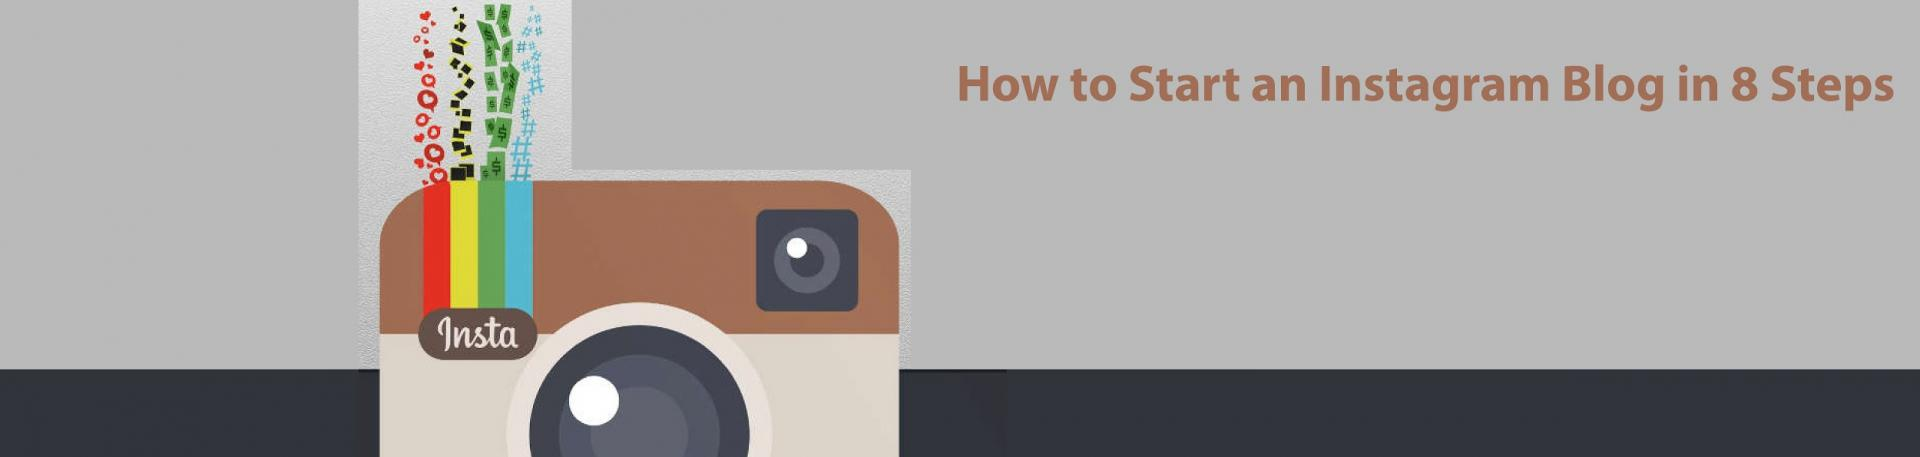 Start an Instagram Blog